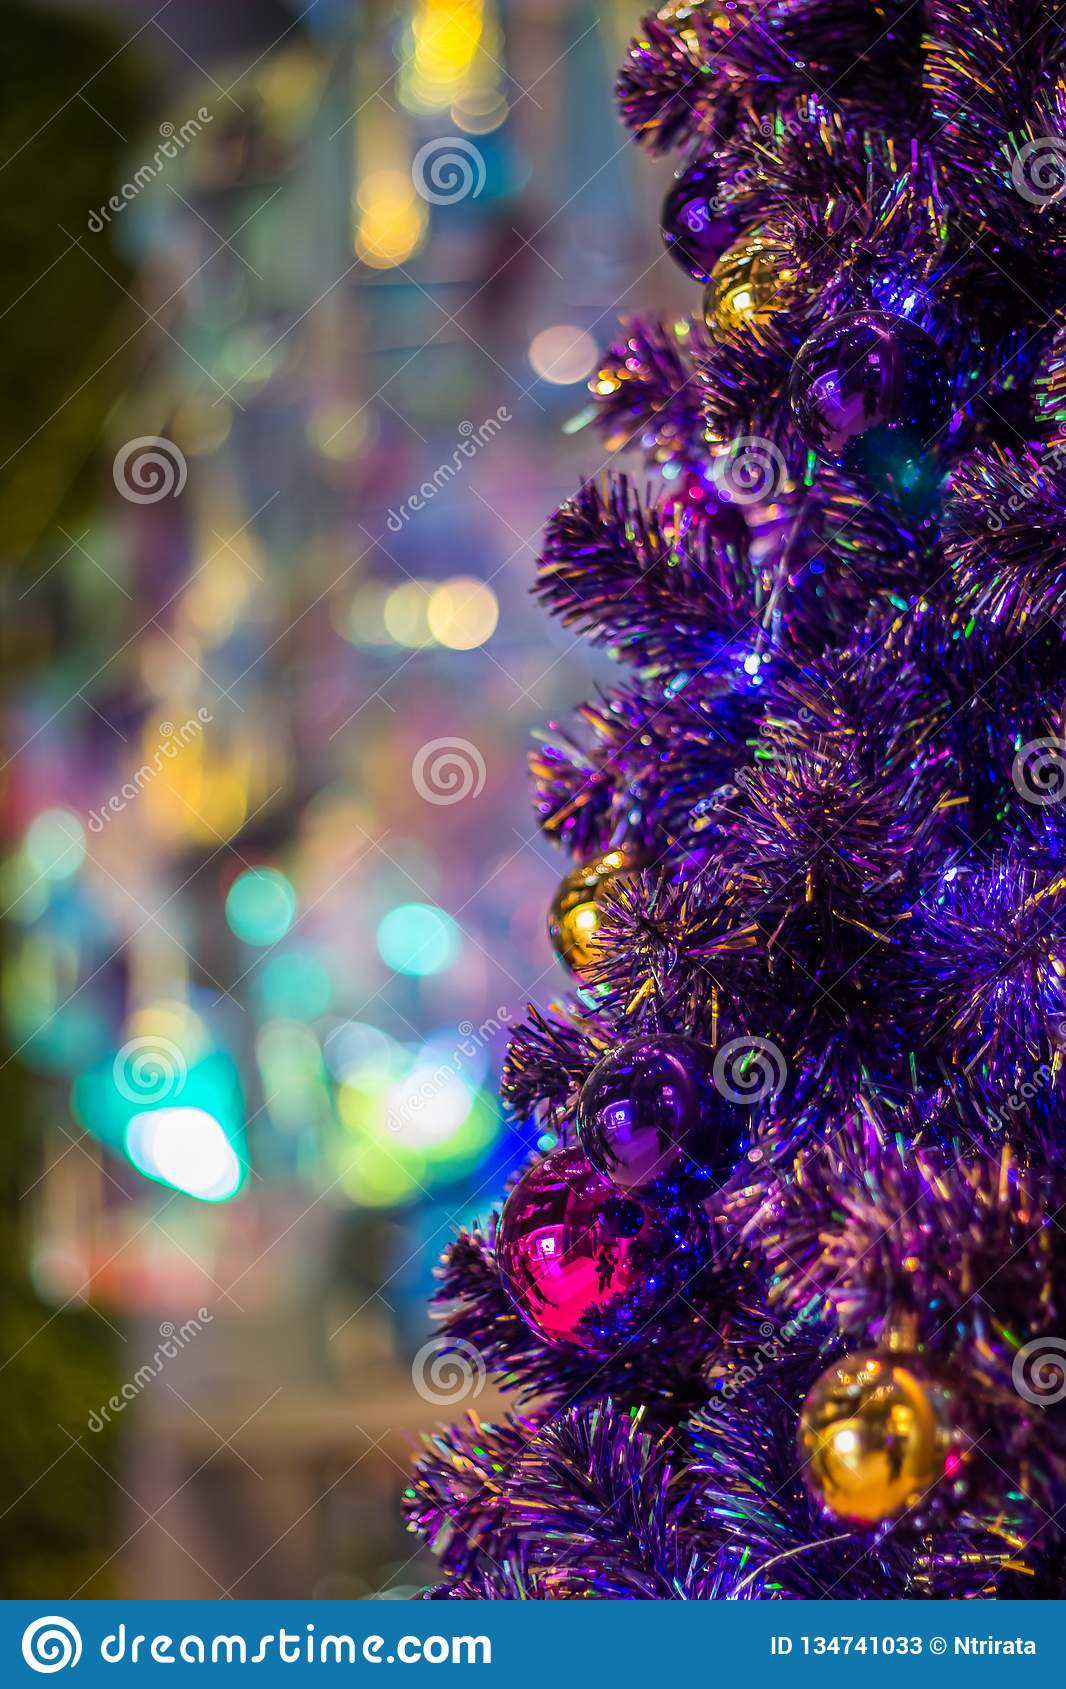 Colorful Christmas Tree Decorations.Shiny Christmas Balls On Colorful Christmas Tree With